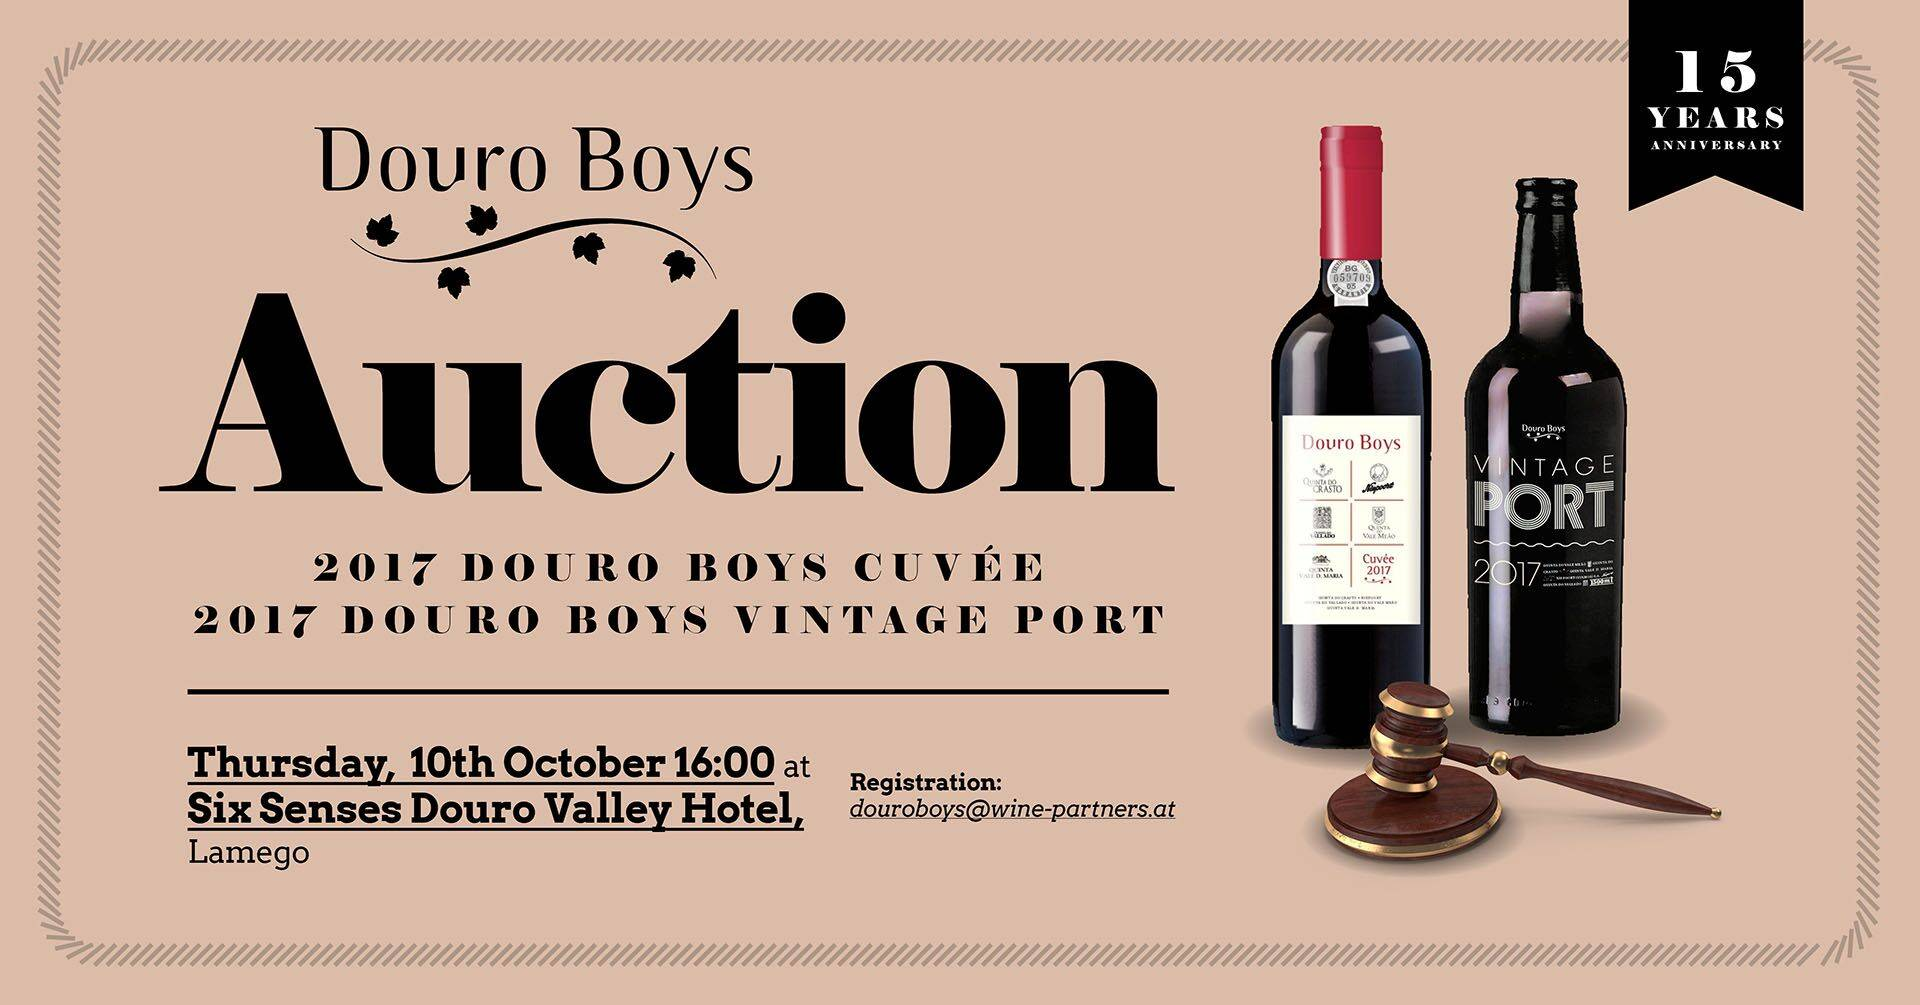 douro_boys_auction